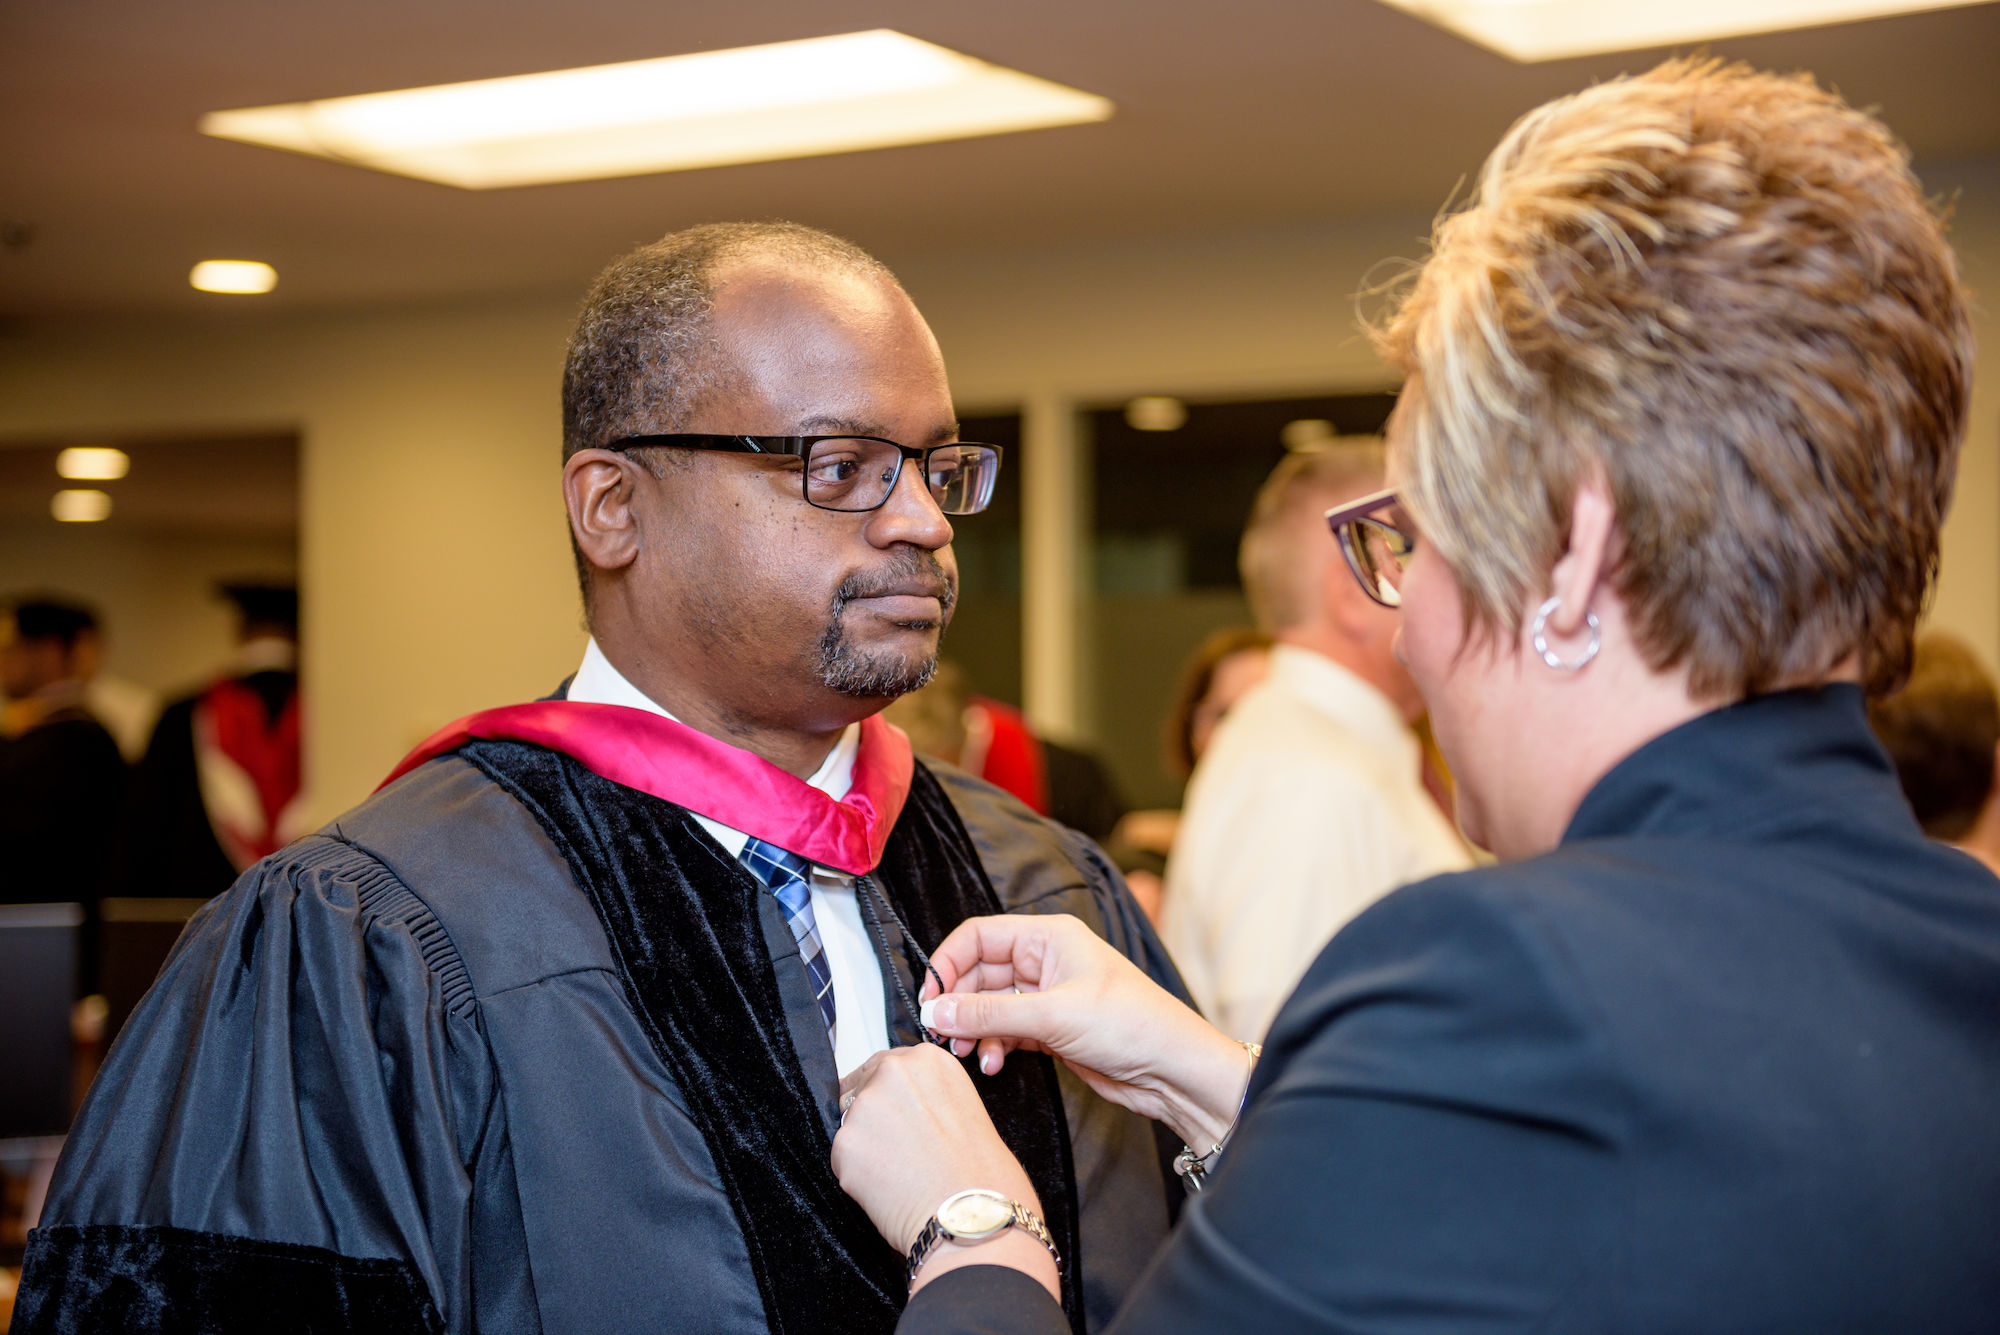 RHIT_Commencement_Platform_Party_Robing-21588.jpg